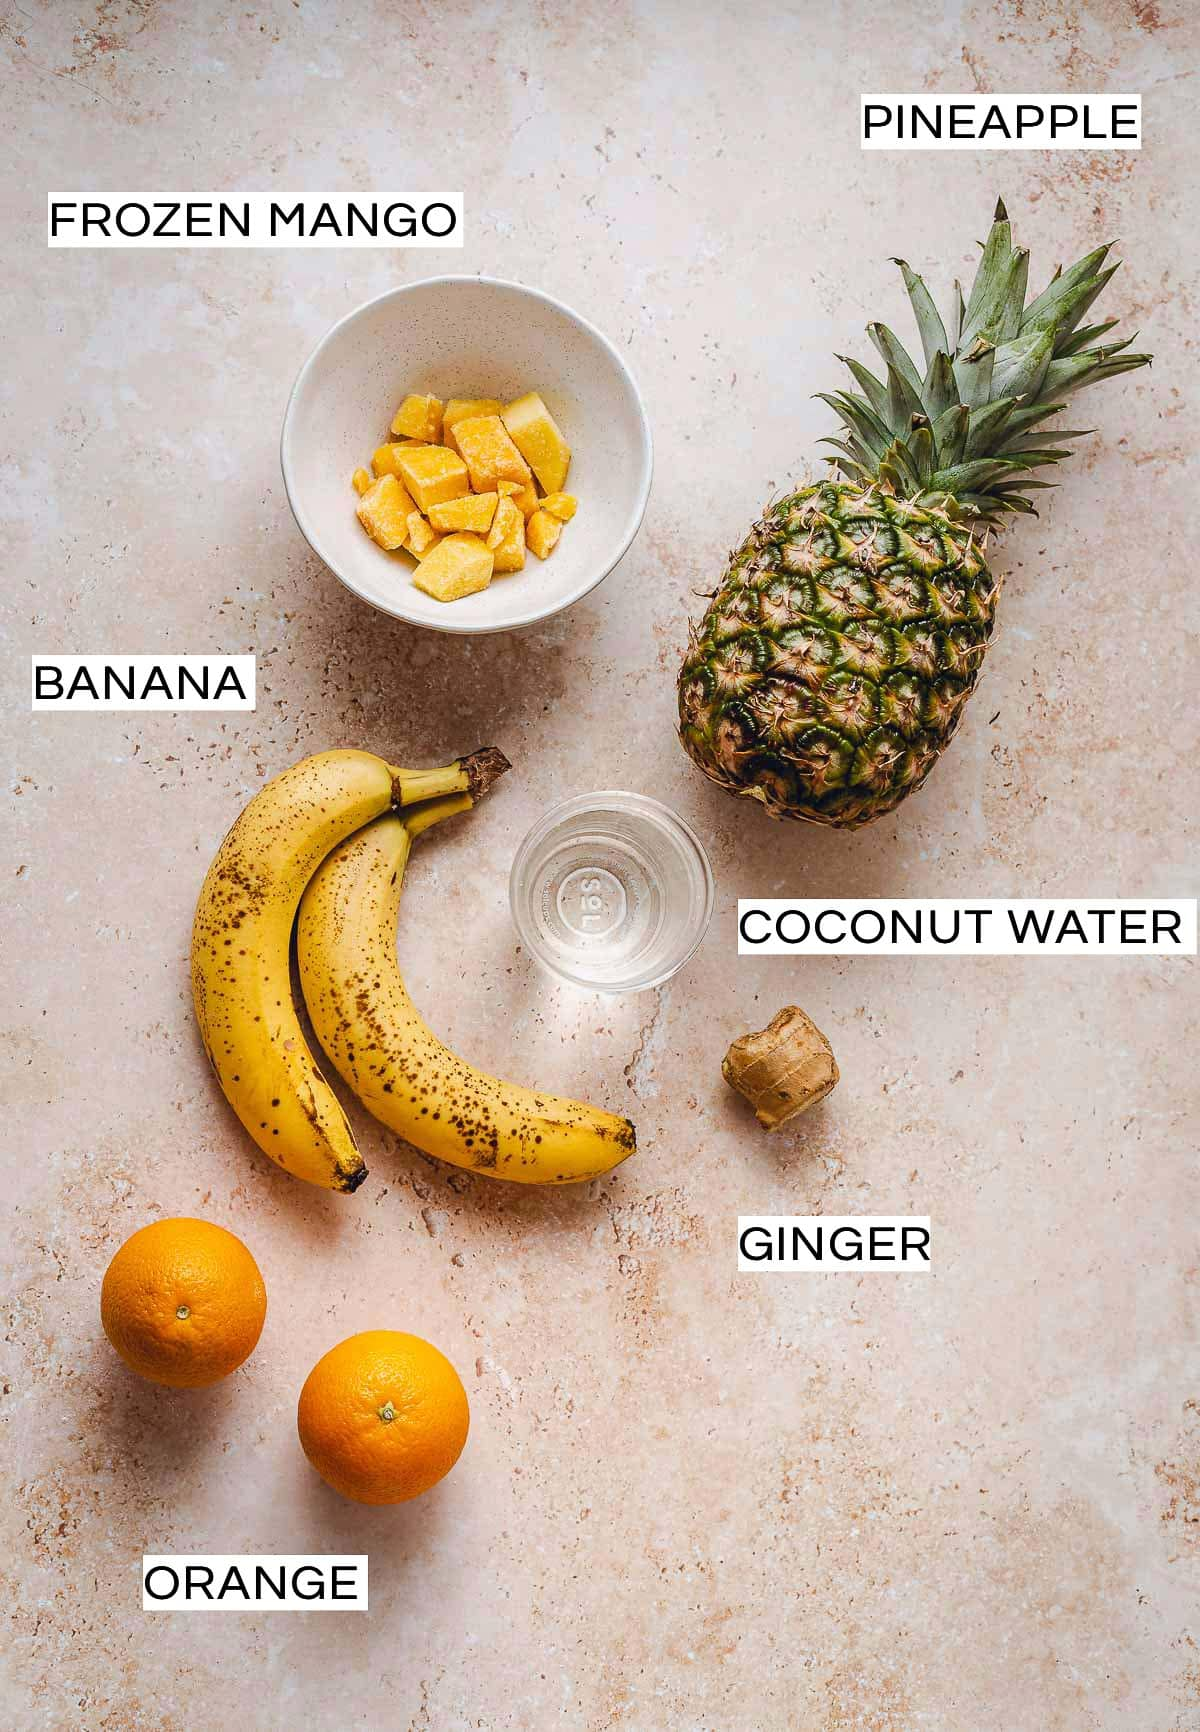 All ingredients needed to make a vegan tropical smoothie laid out on a flat surface.